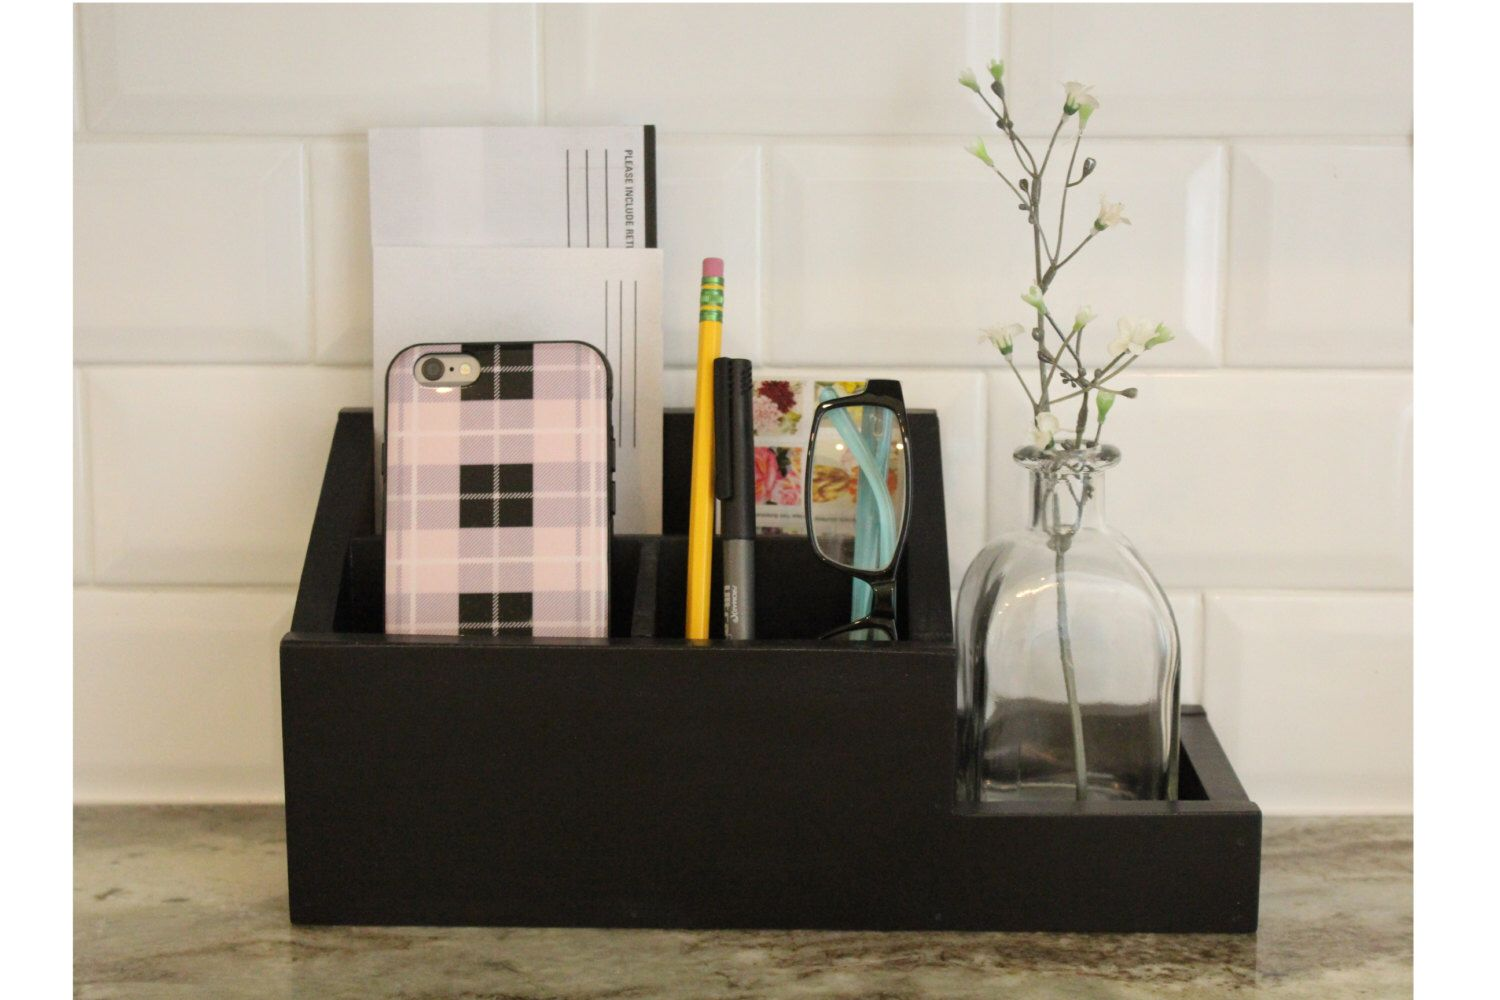 Pin By Wendy Small On Charging Stations Desk Organizers Countertop Organization Charging Station Organizer Desk Organization